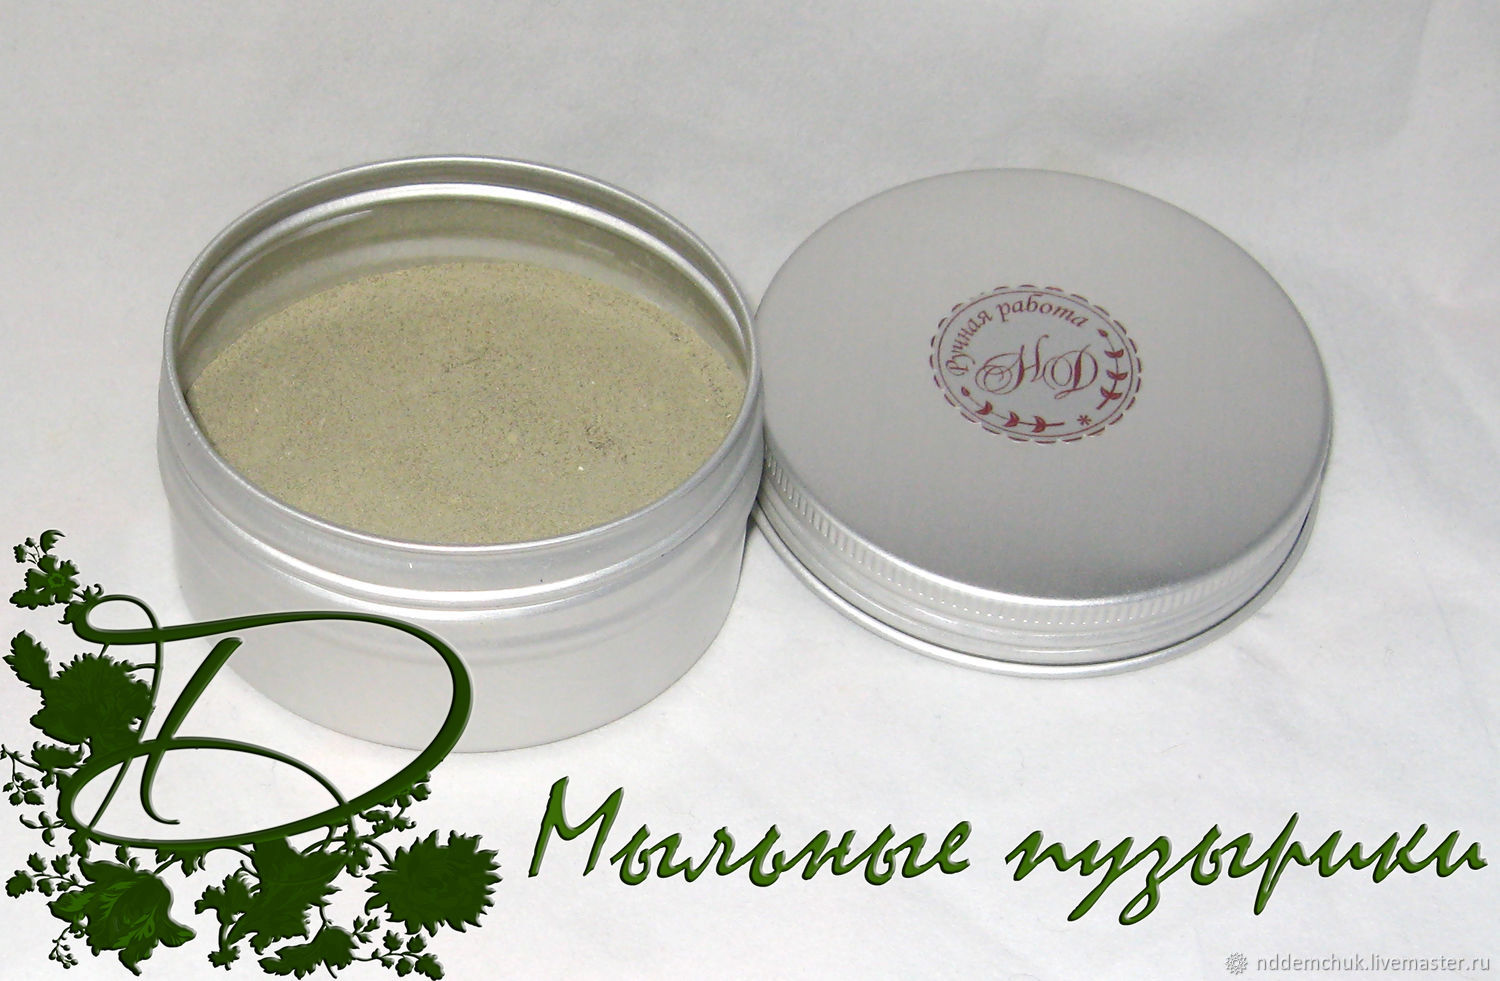 Ubtan ' skin Radiance', Mask for the face, Moscow,  Фото №1